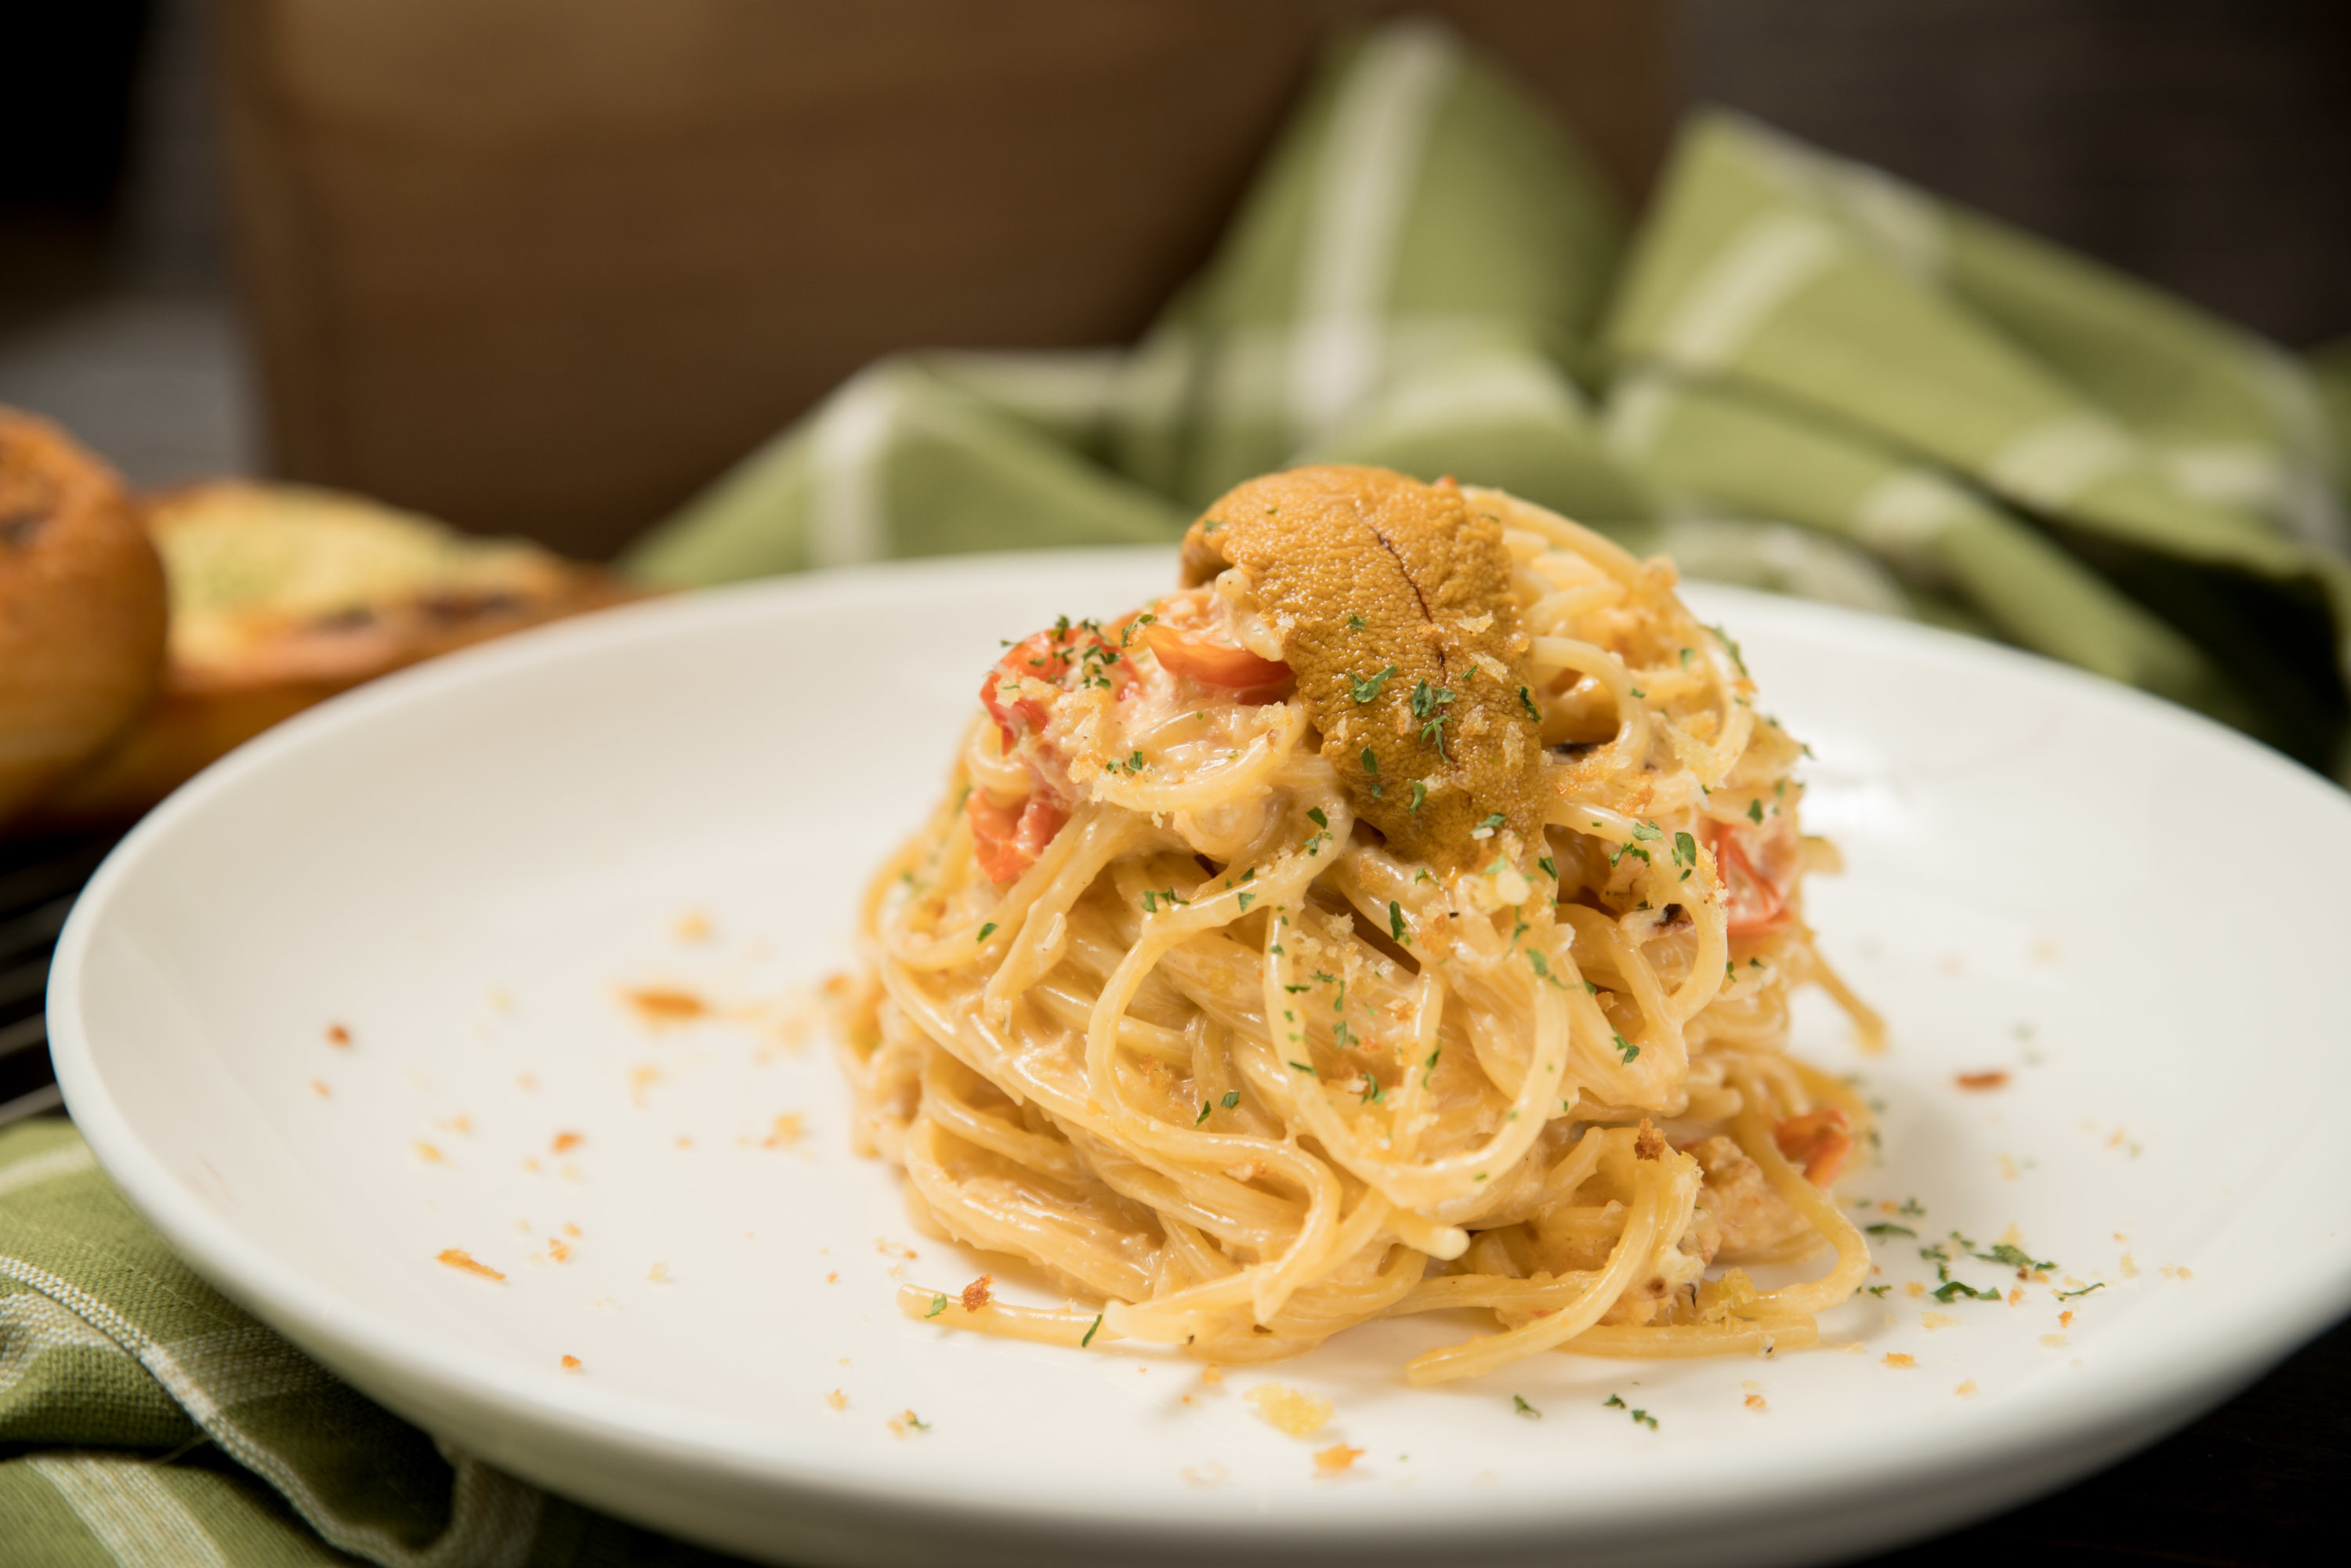 Sea_Urchin___Crab_Meat_Spaghetti